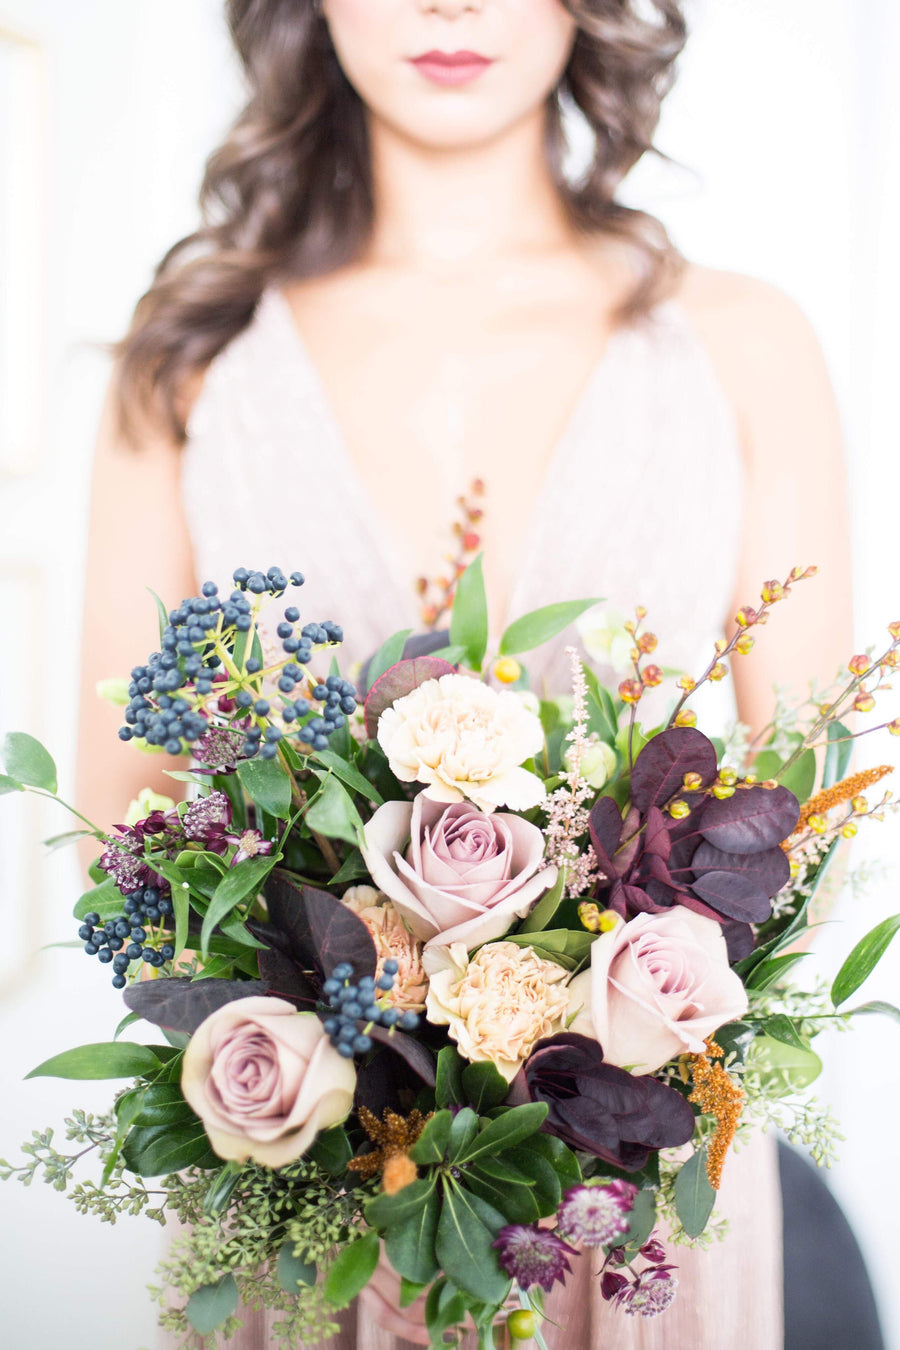 Bridal bouquet - rich and moody